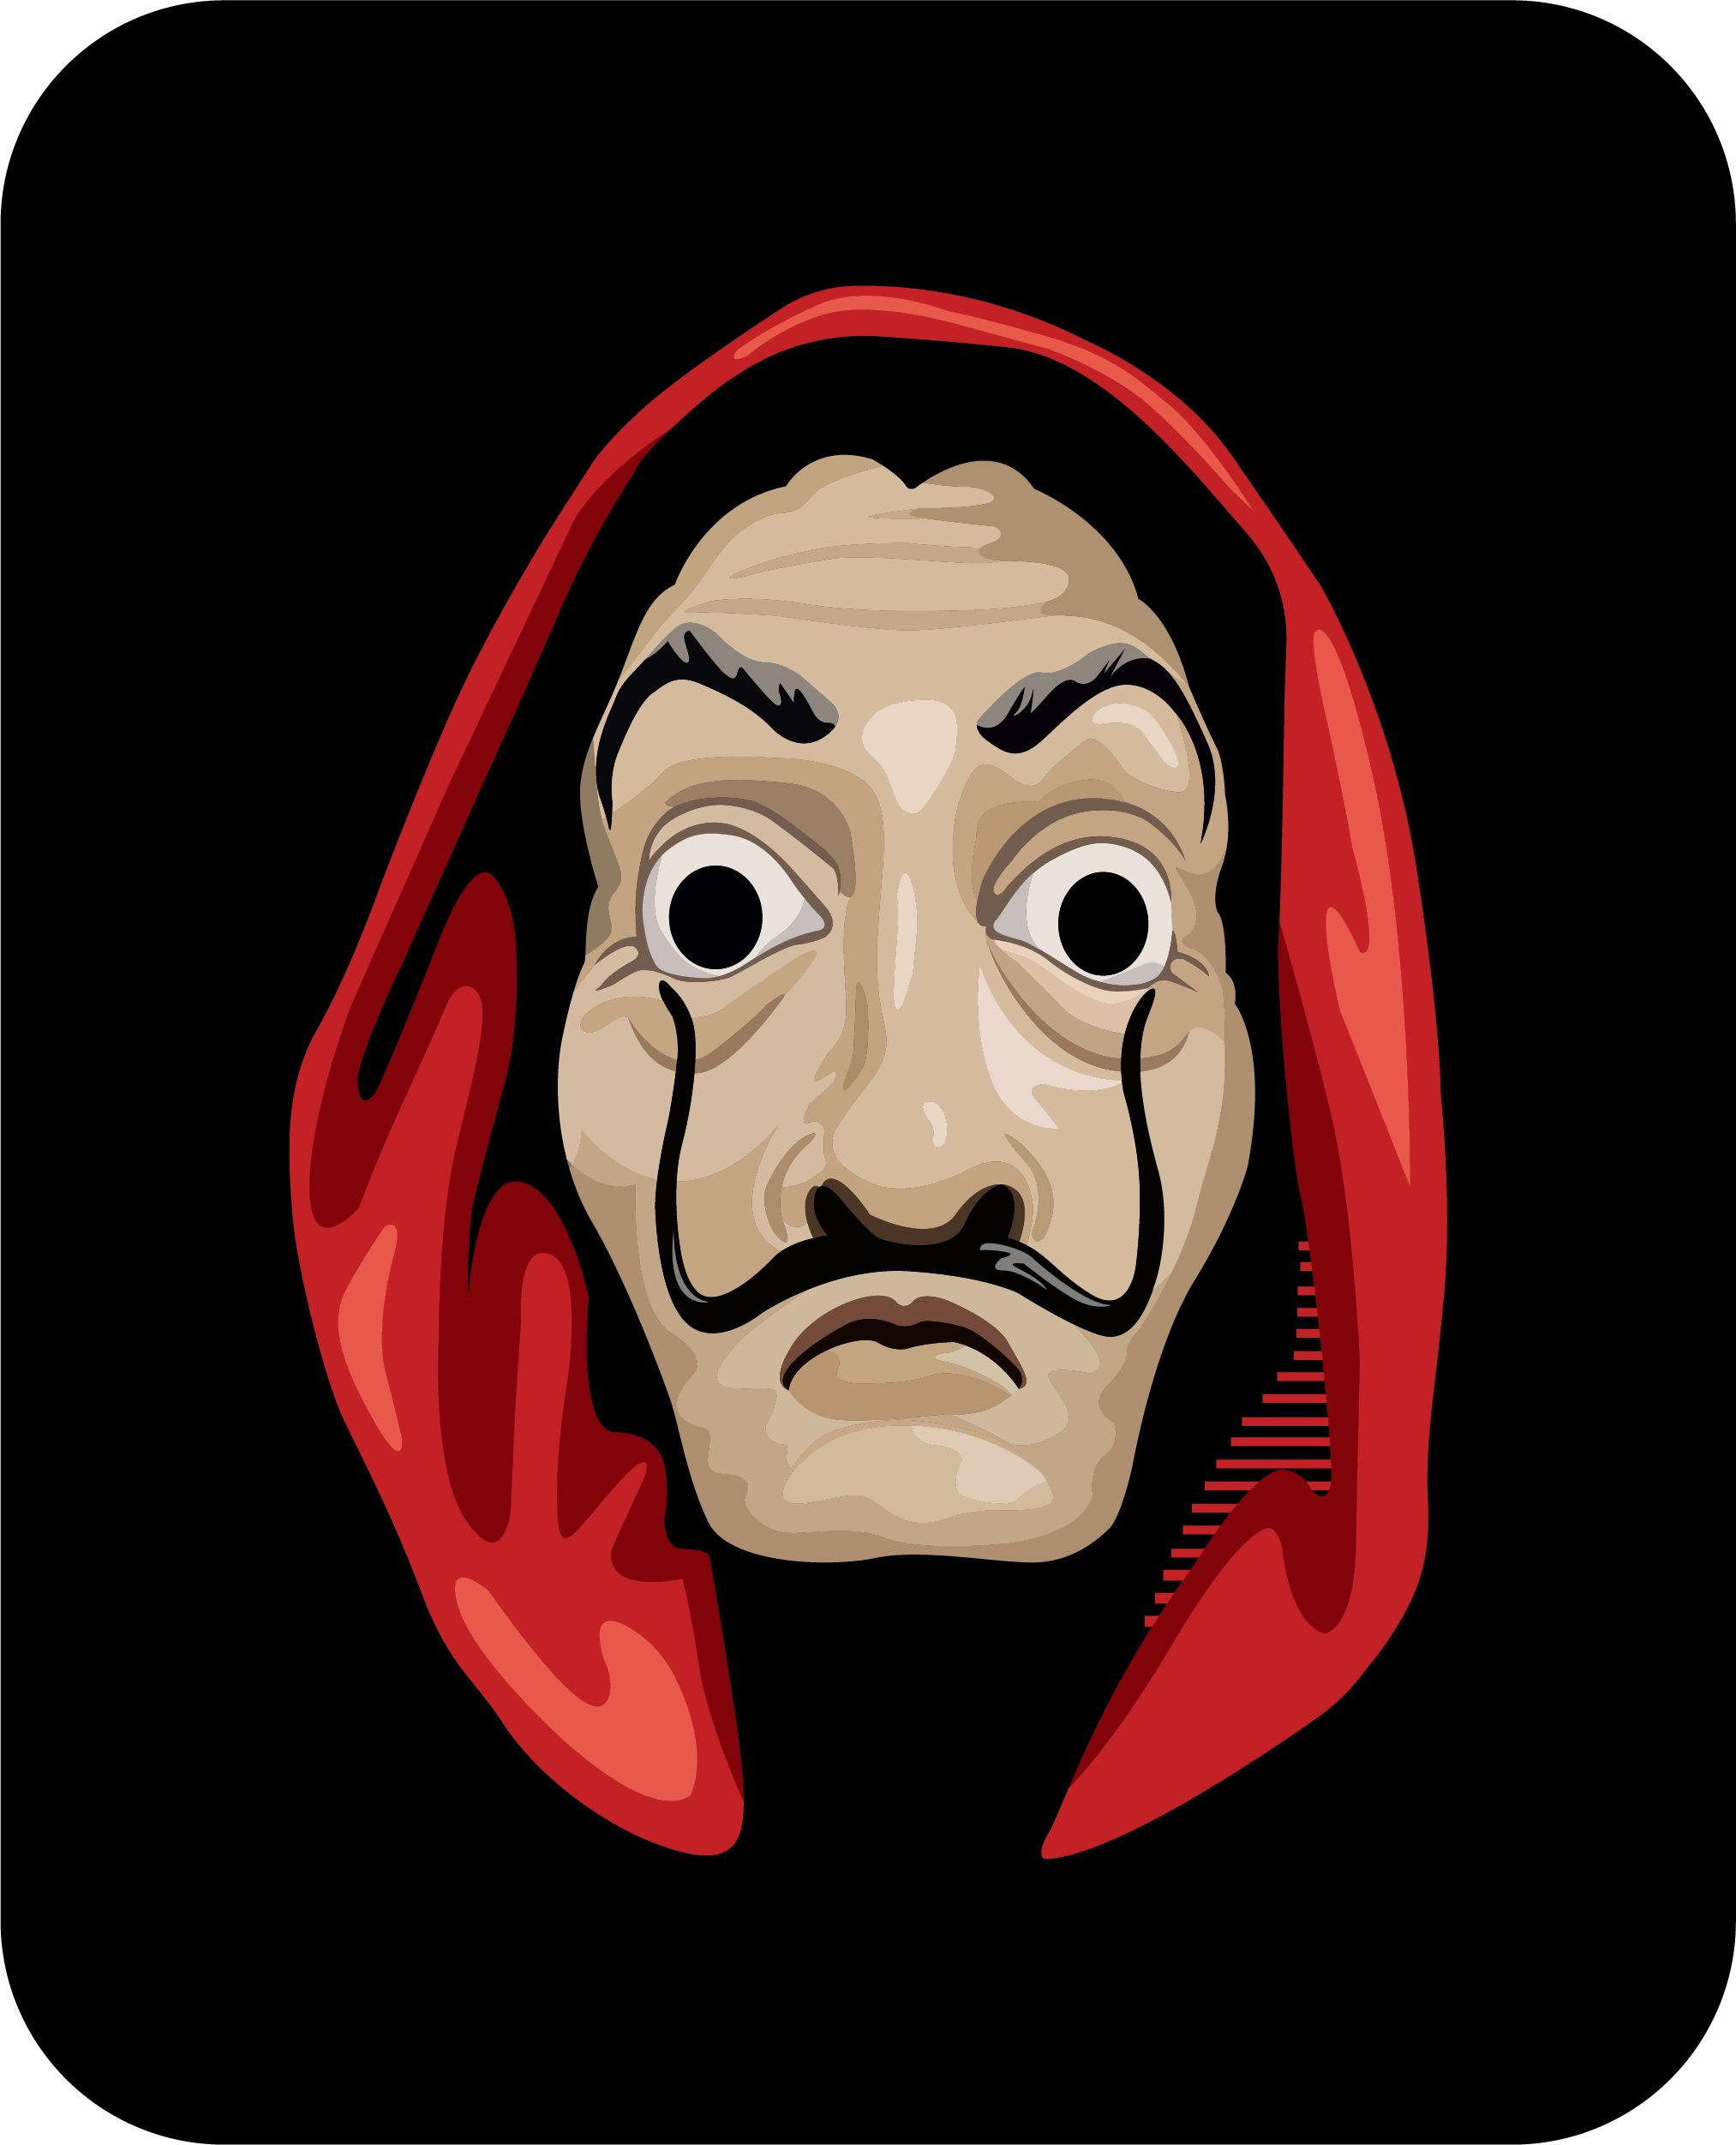 Money Heist Mask Mask Drawing Space Phone Wallpaper Greys Anatomy Gifts